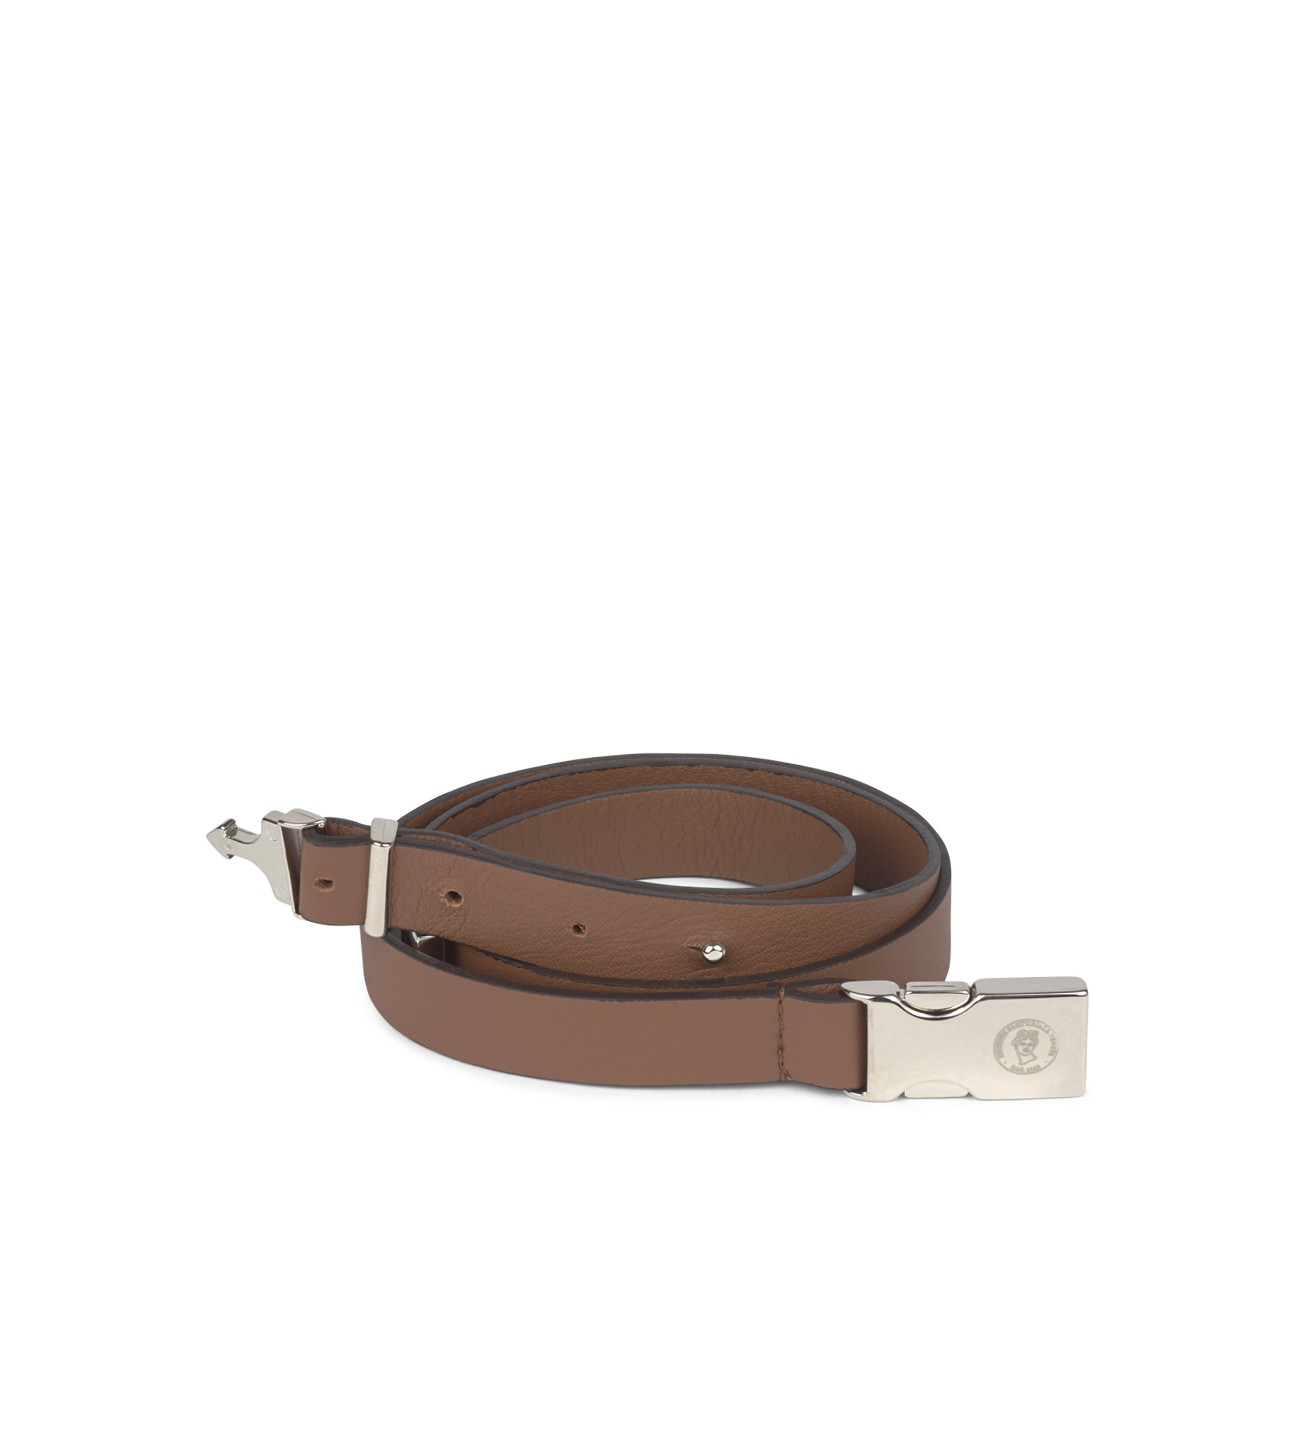 PESERICO_LEATHER_BELT_WITH_METALLIC_EDGE_MARIONA_FASHION_CLOTHING_WOMAN_SHOP_ONLINE_S32481C0